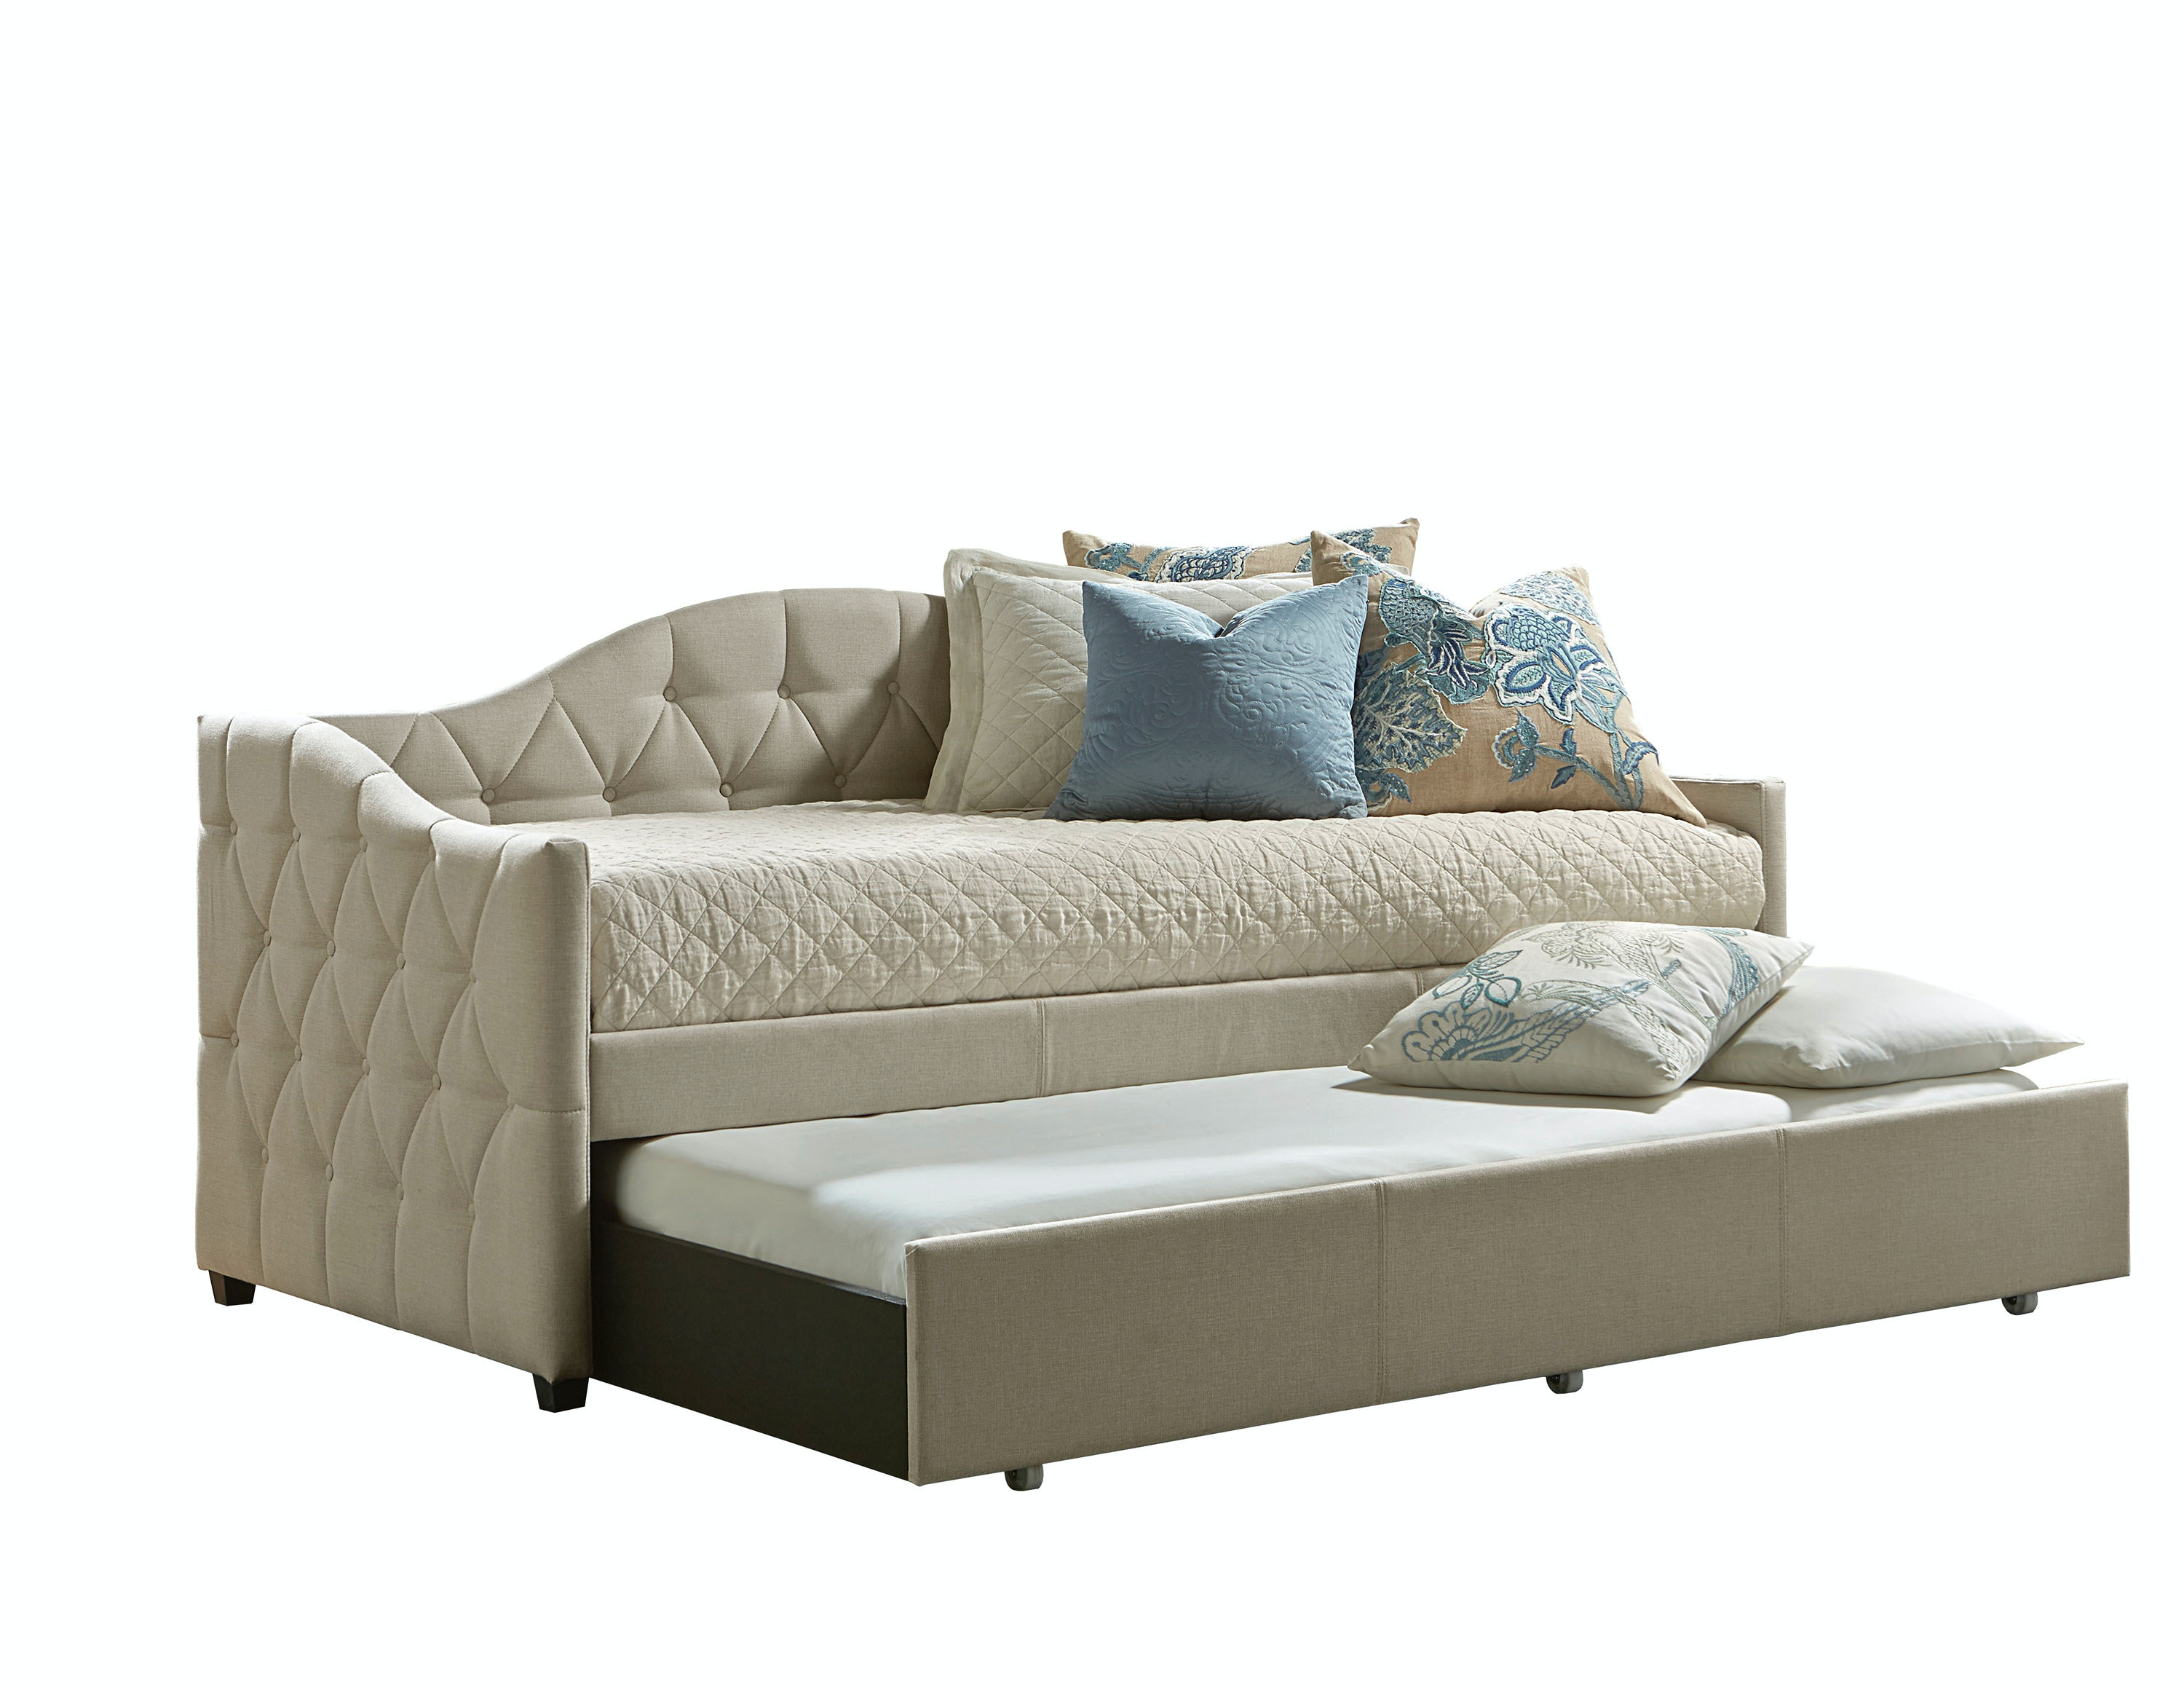 Hillsdale Furniture Bedroom Jamie Daybed   Trundle 1125 030 At Doughtyu0027s  Furniture Inc.